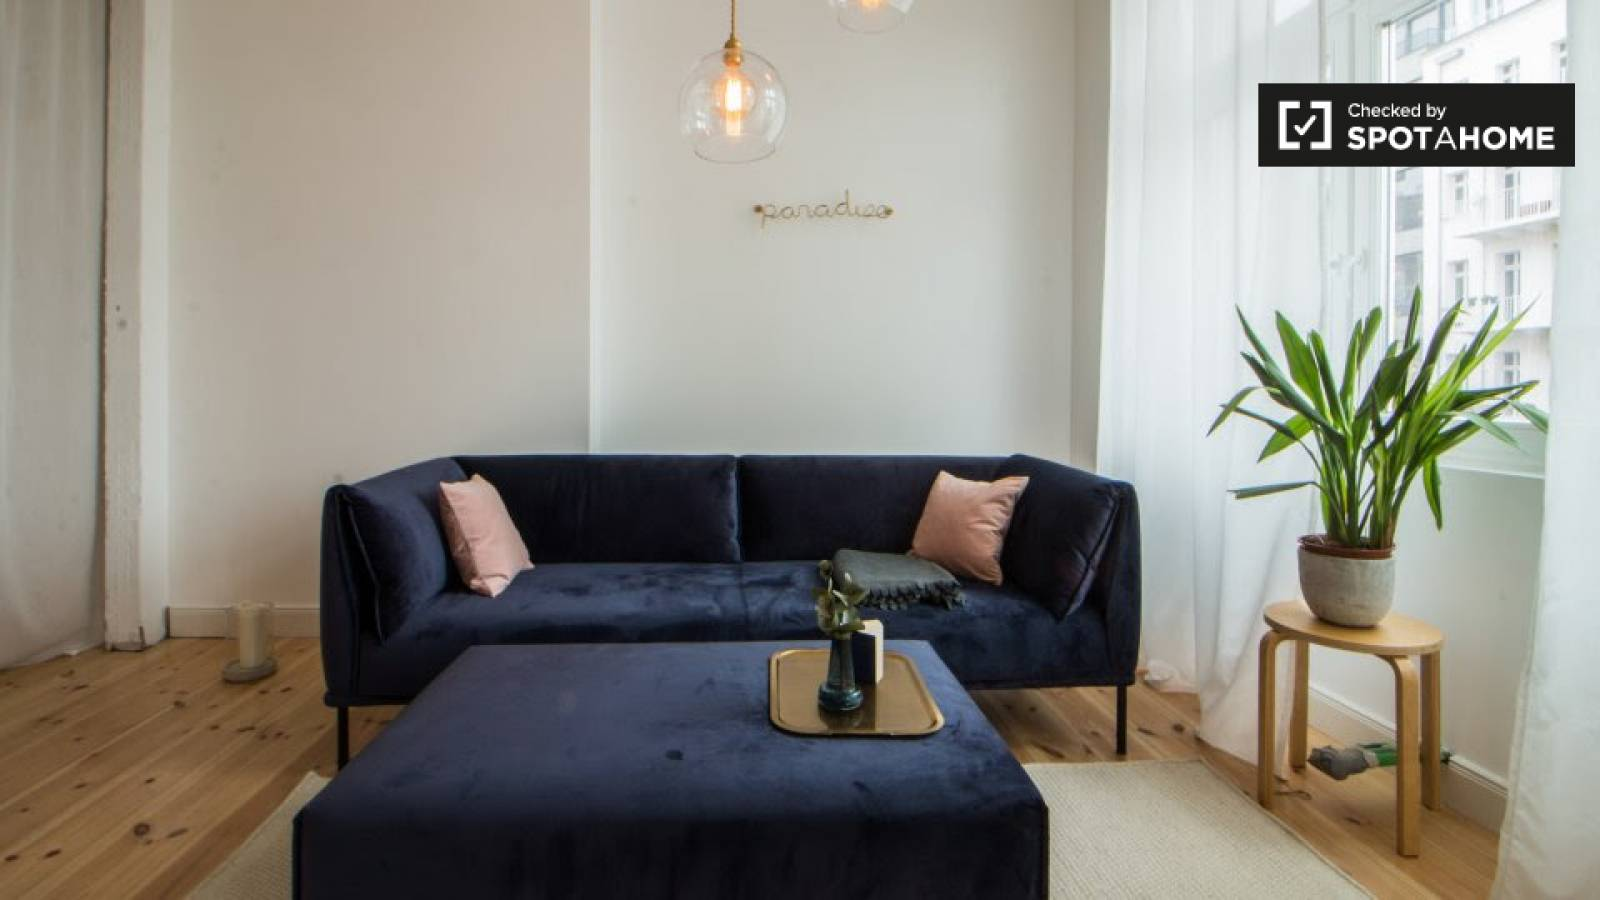 Sofa Paradies 2000 Stylish 1 Bedroom Apartment With Balcony For Rent In Prenzlauer Berg